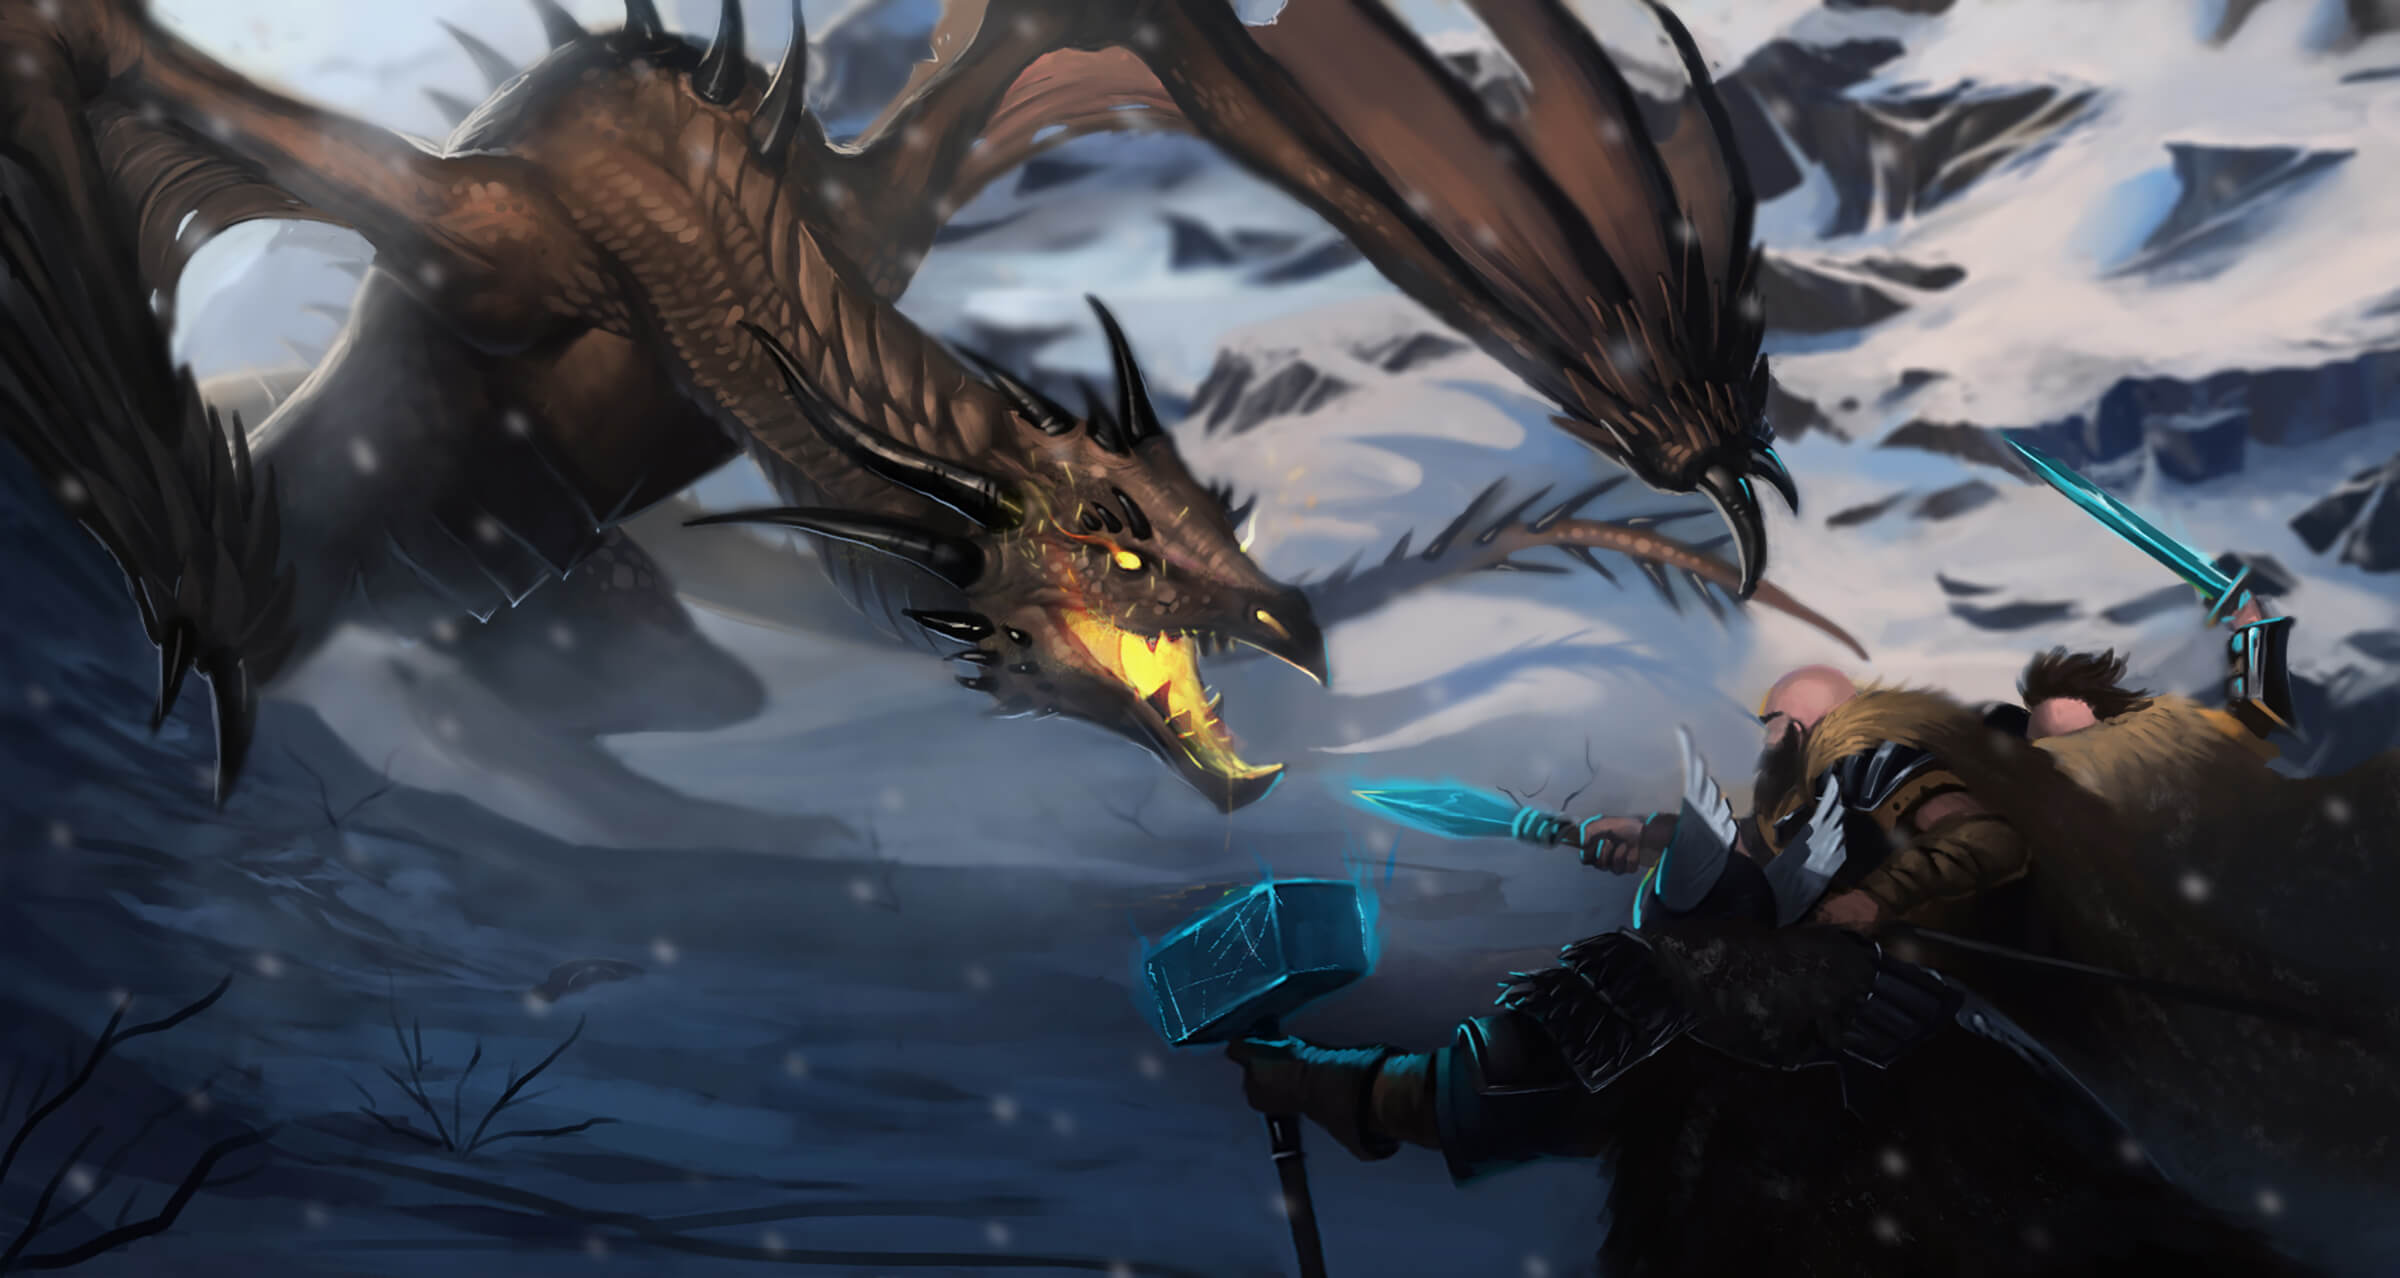 Sword-, spear-, and hammer-wielding warriors confront a large, brown dragon in a snowy environment.